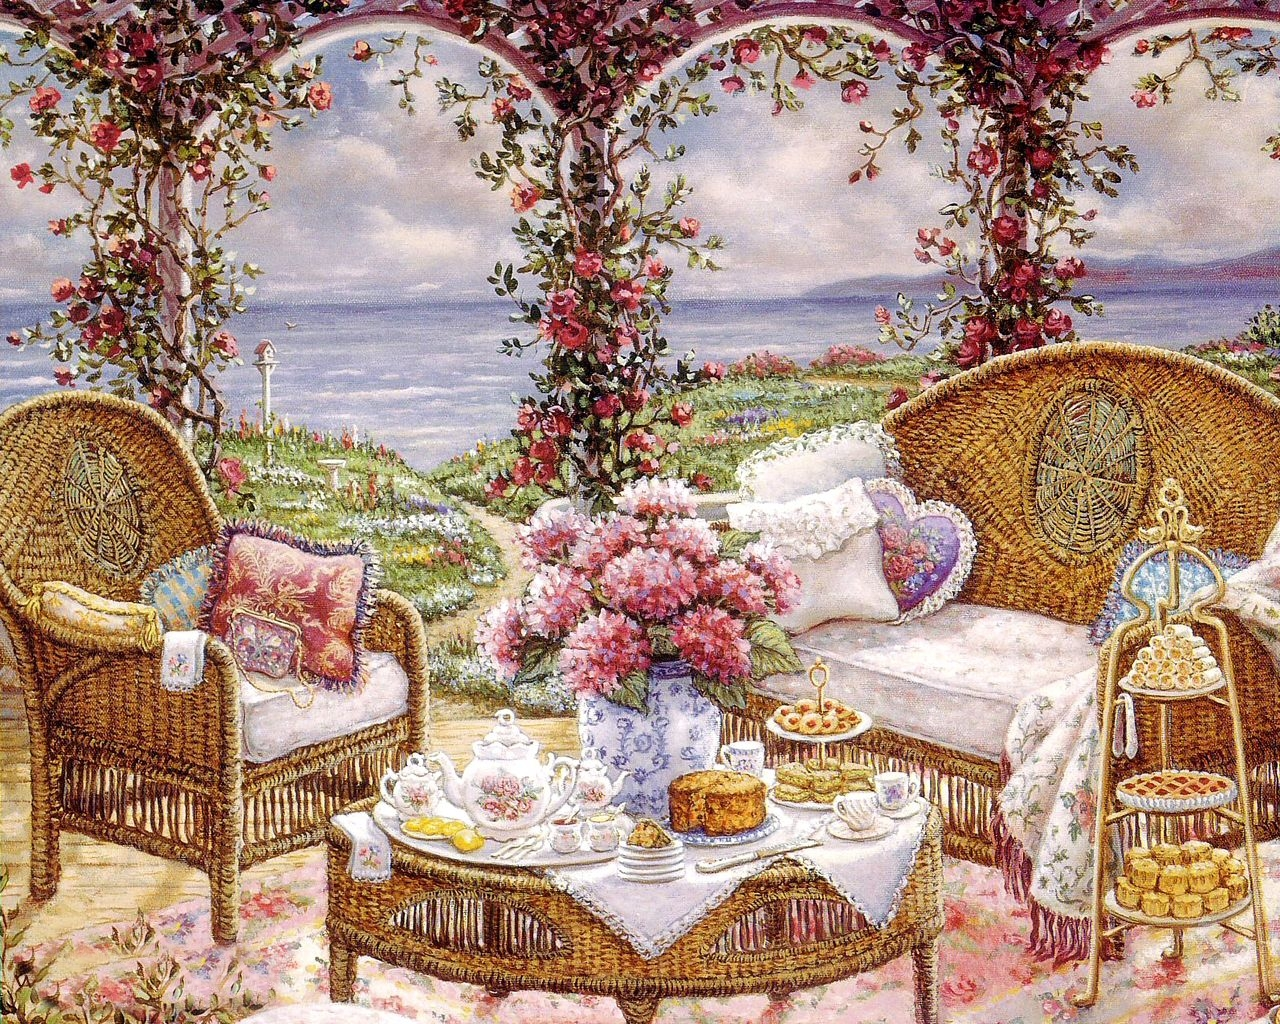 Janet kruskamp romantic realist painter tutt 39 art for Garden painting images